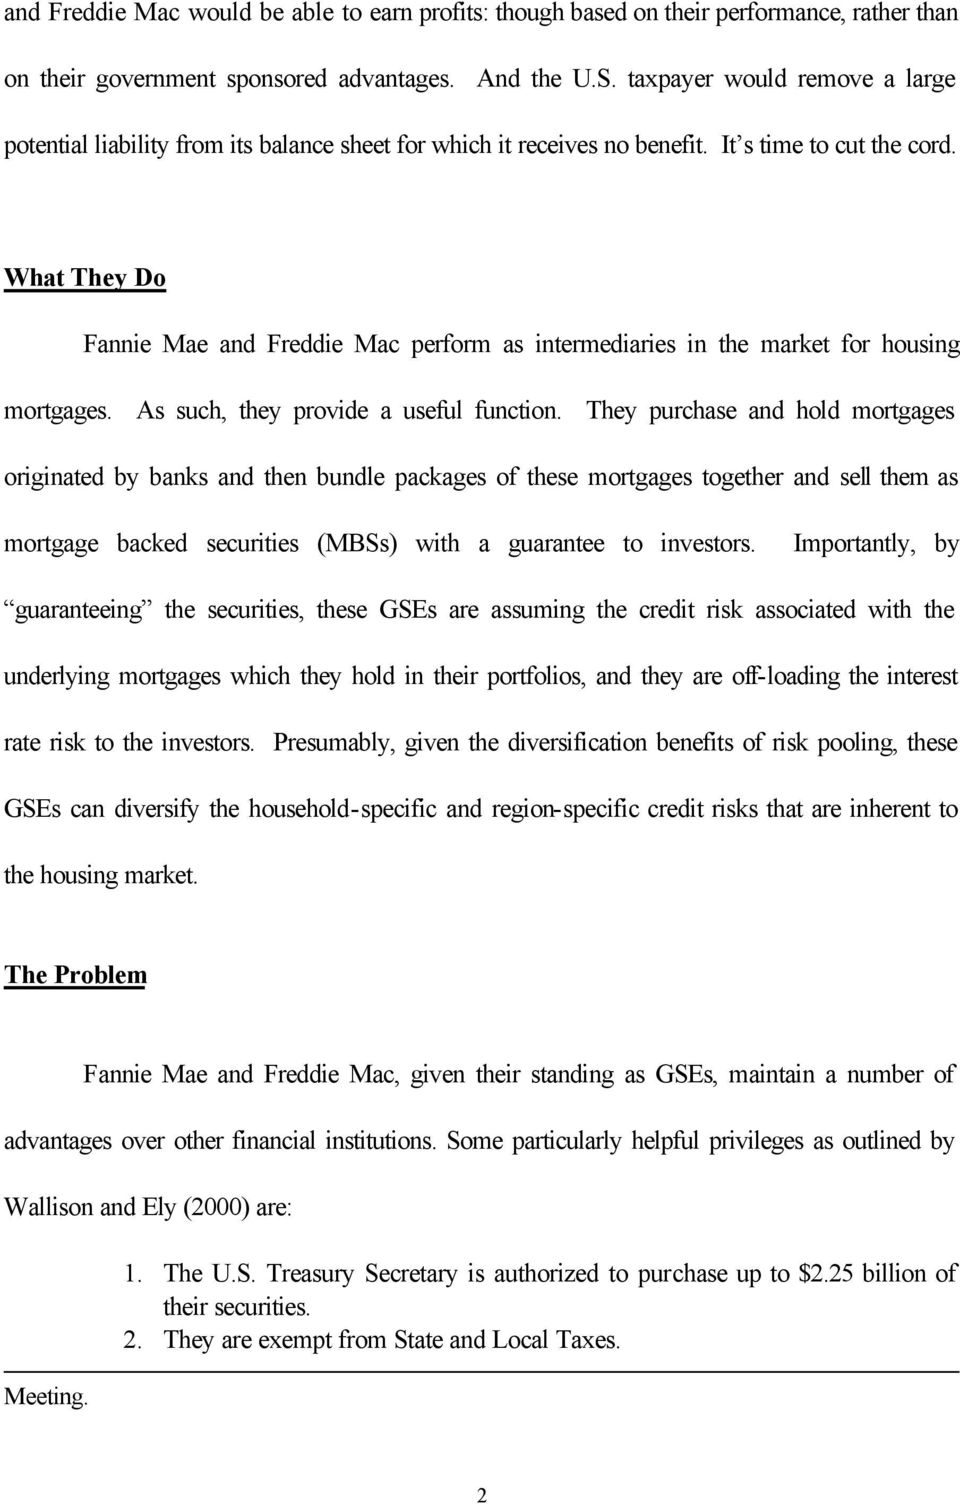 What They Do Fannie Mae and Freddie Mac perform as intermediaries in the market for housing mortgages. As such, they provide a useful function.